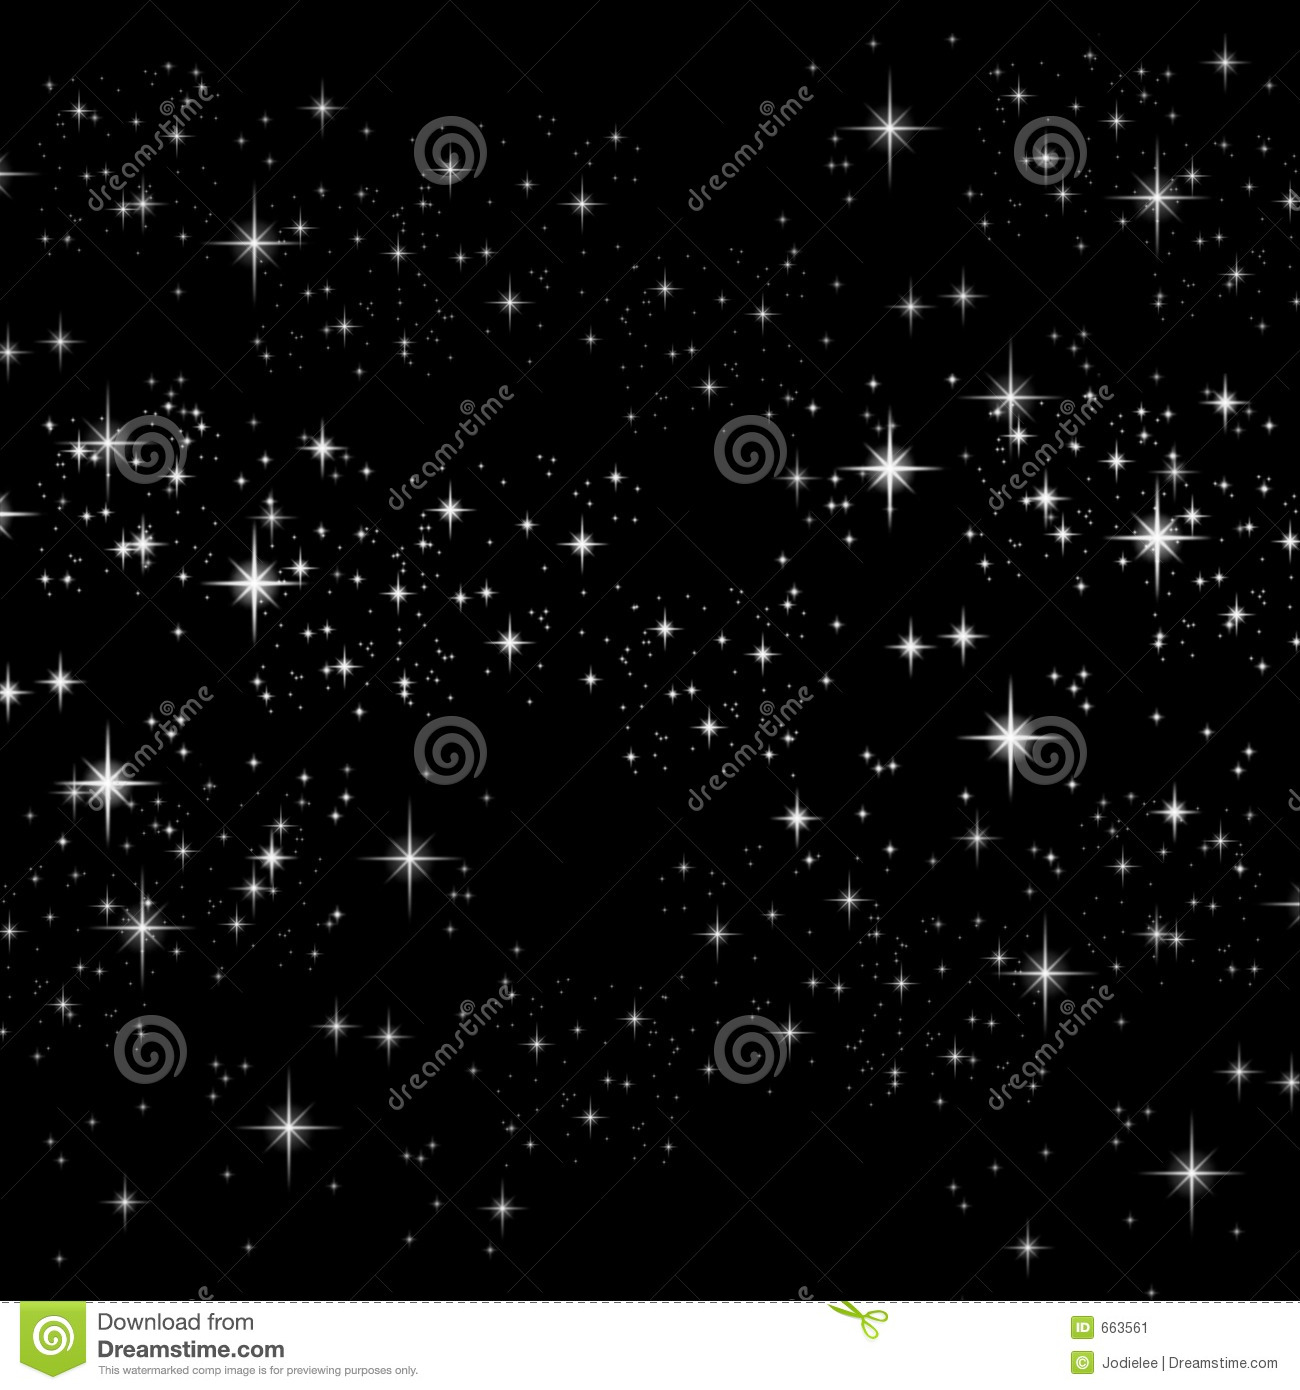 3d Animation Wallpaper Download Sparkle Stars Background Stock Image Image 663561